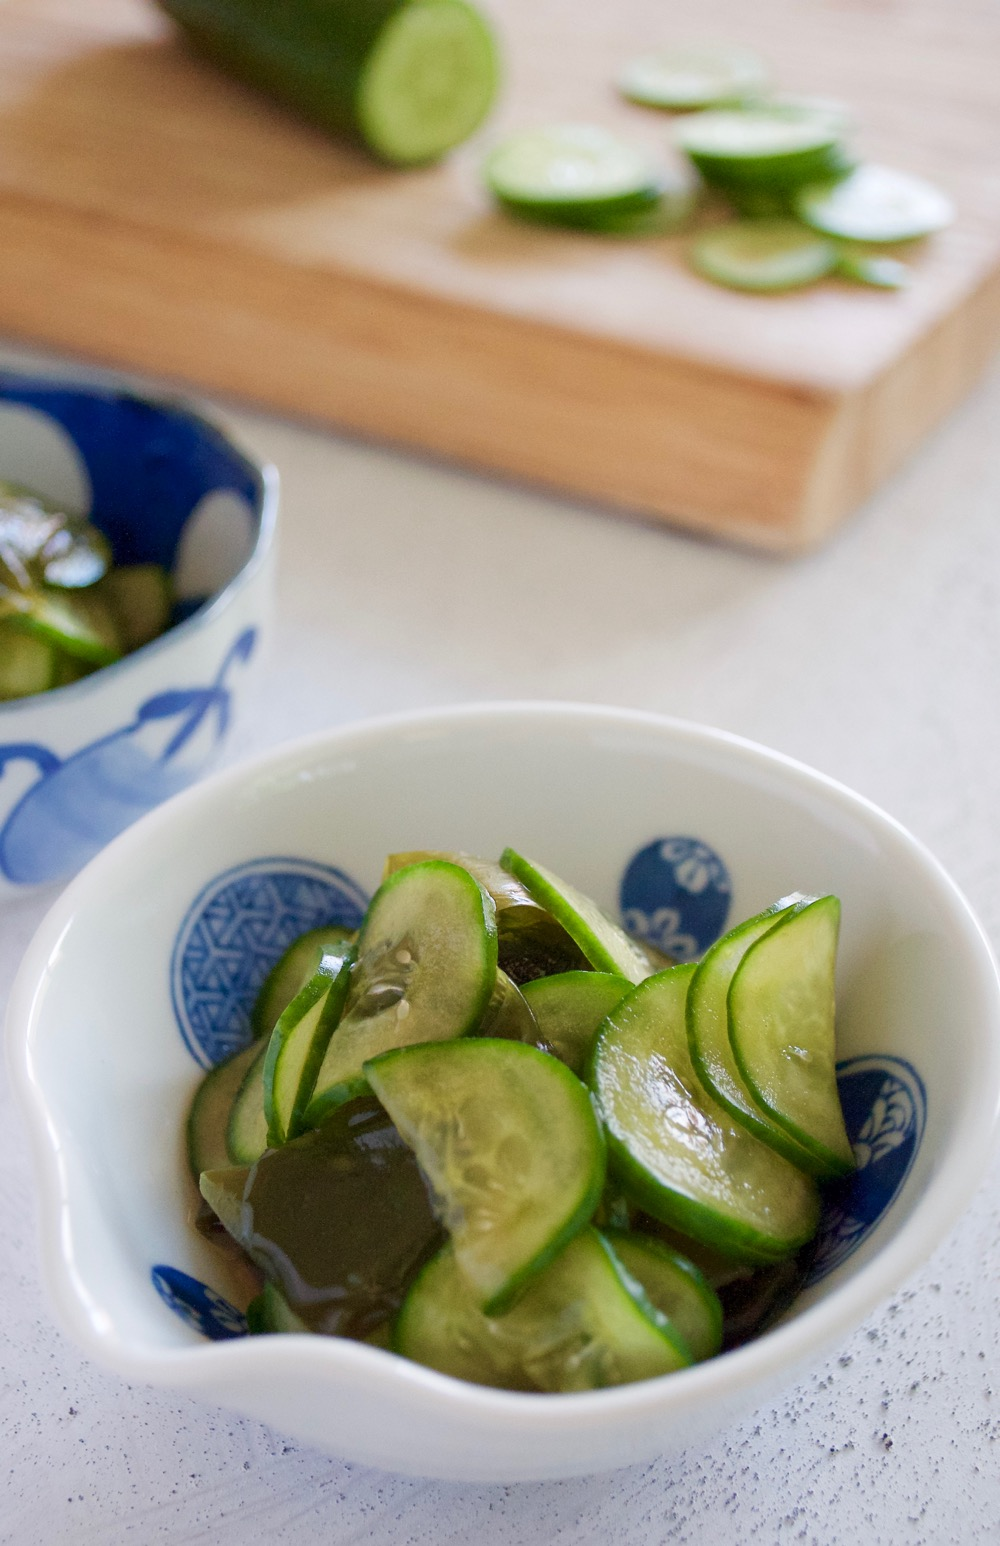 The most popular combination of Sunomono (vinegar Dressing) is this cucumber and Wakame seaweed. Simple to make and delicious.